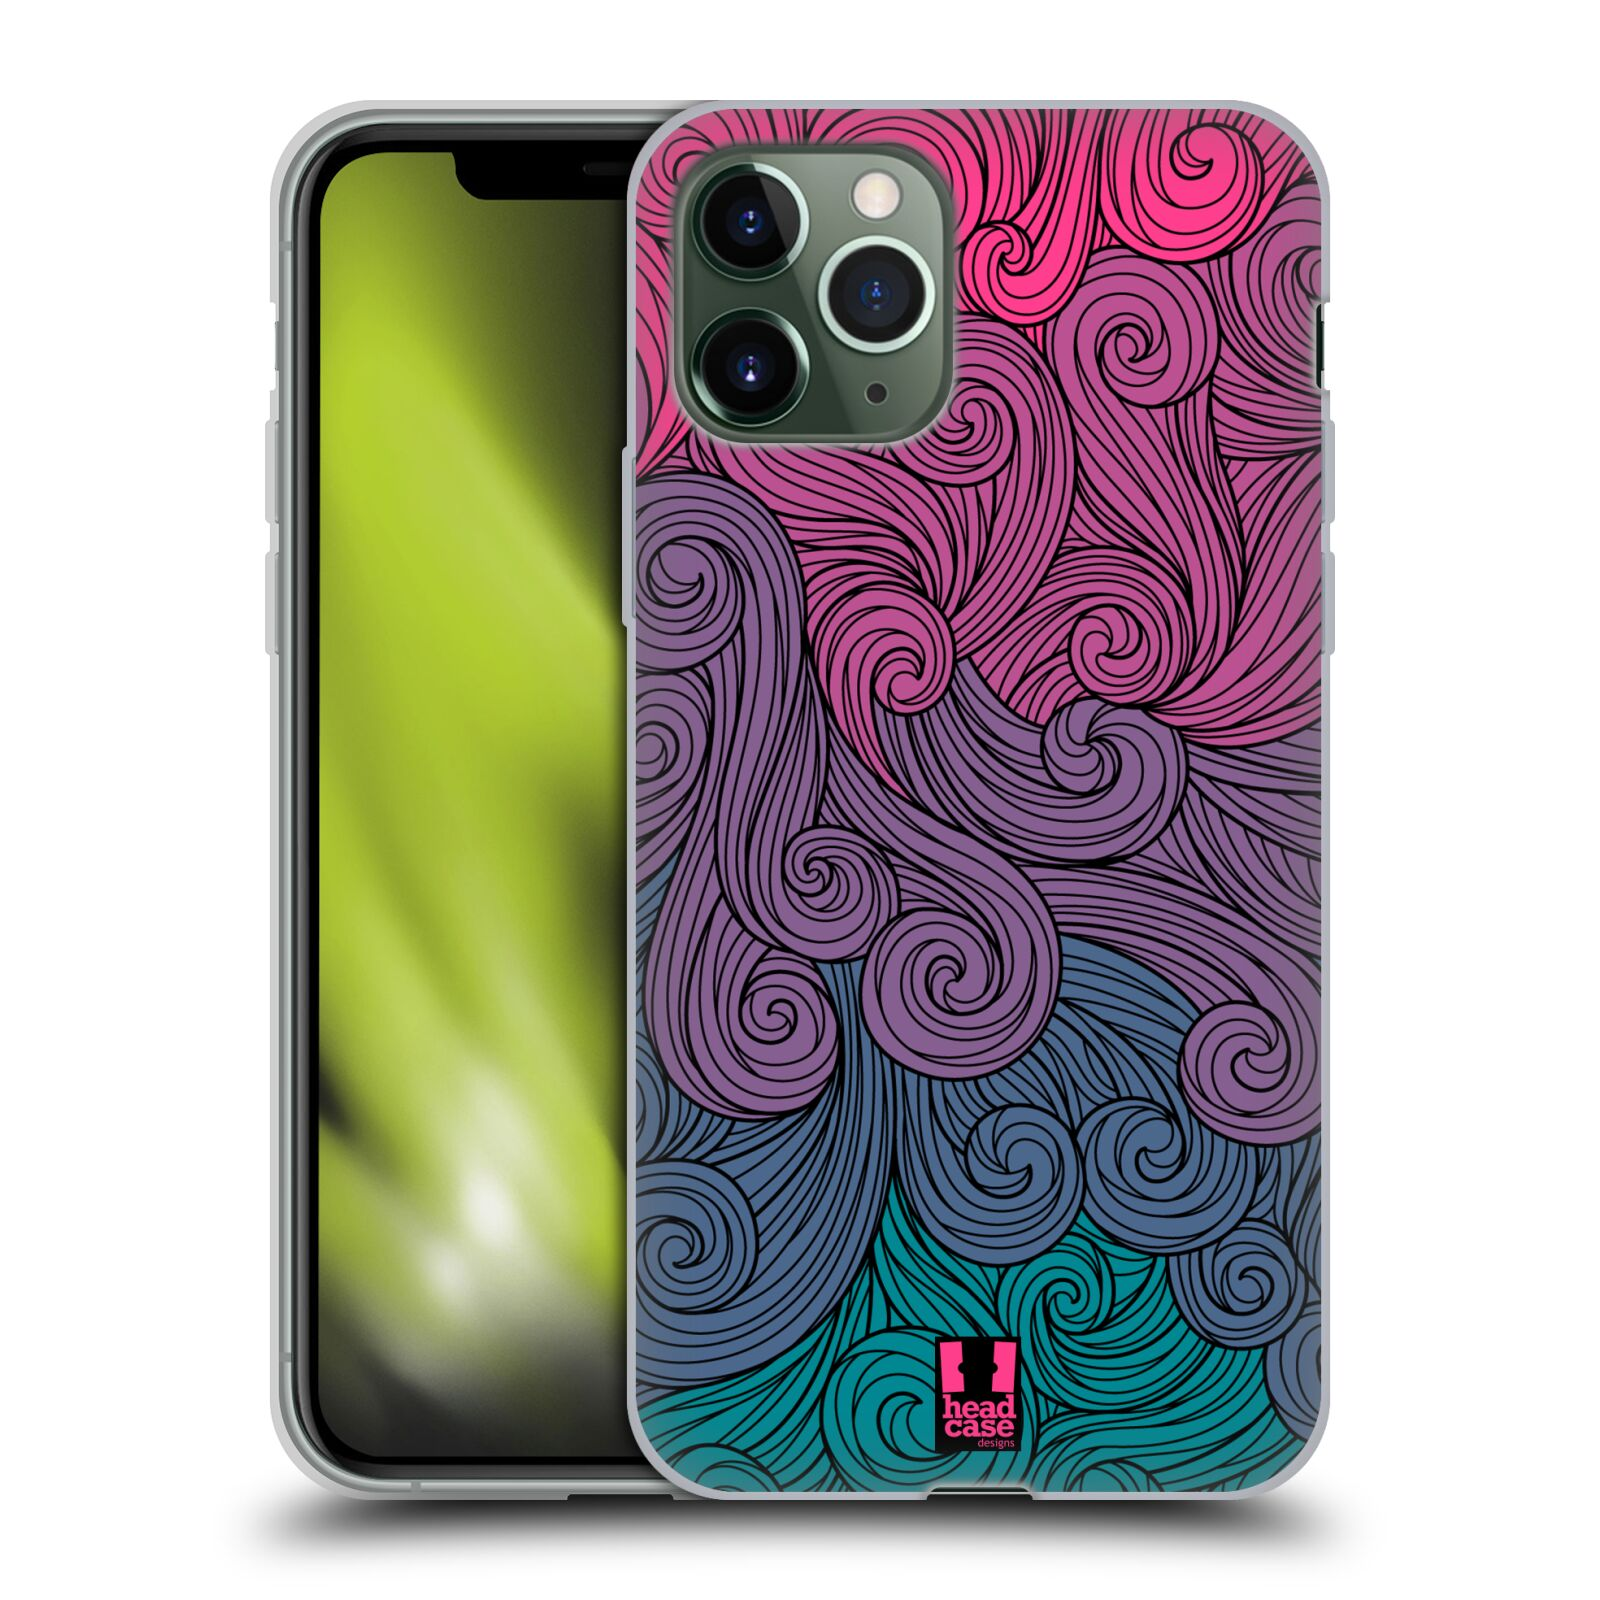 obal iphone x spigen | Silikonové pouzdro na mobil Apple iPhone 11 Pro - Head Case - Swirls Hot Pink